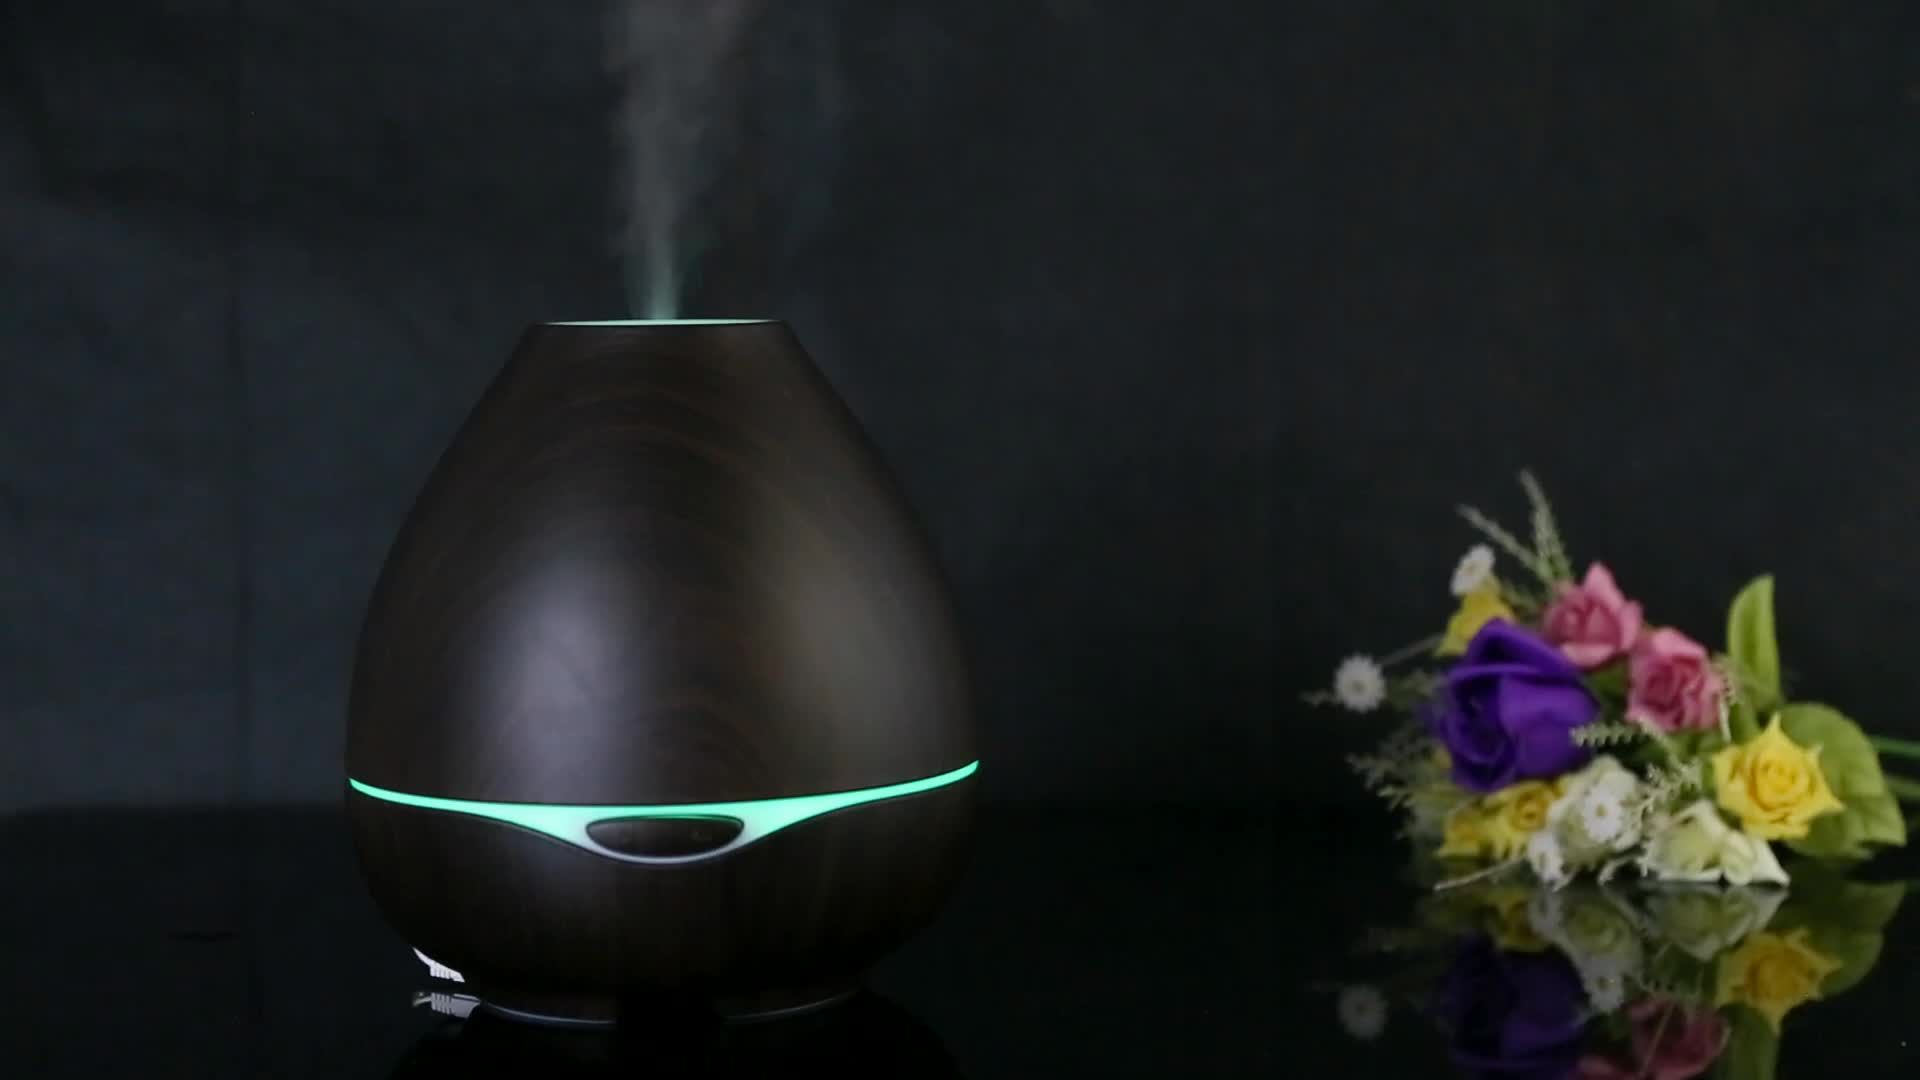 Best Seller Aromacare 300ml Wood Grain Olive Oil Diffuser Humidifier